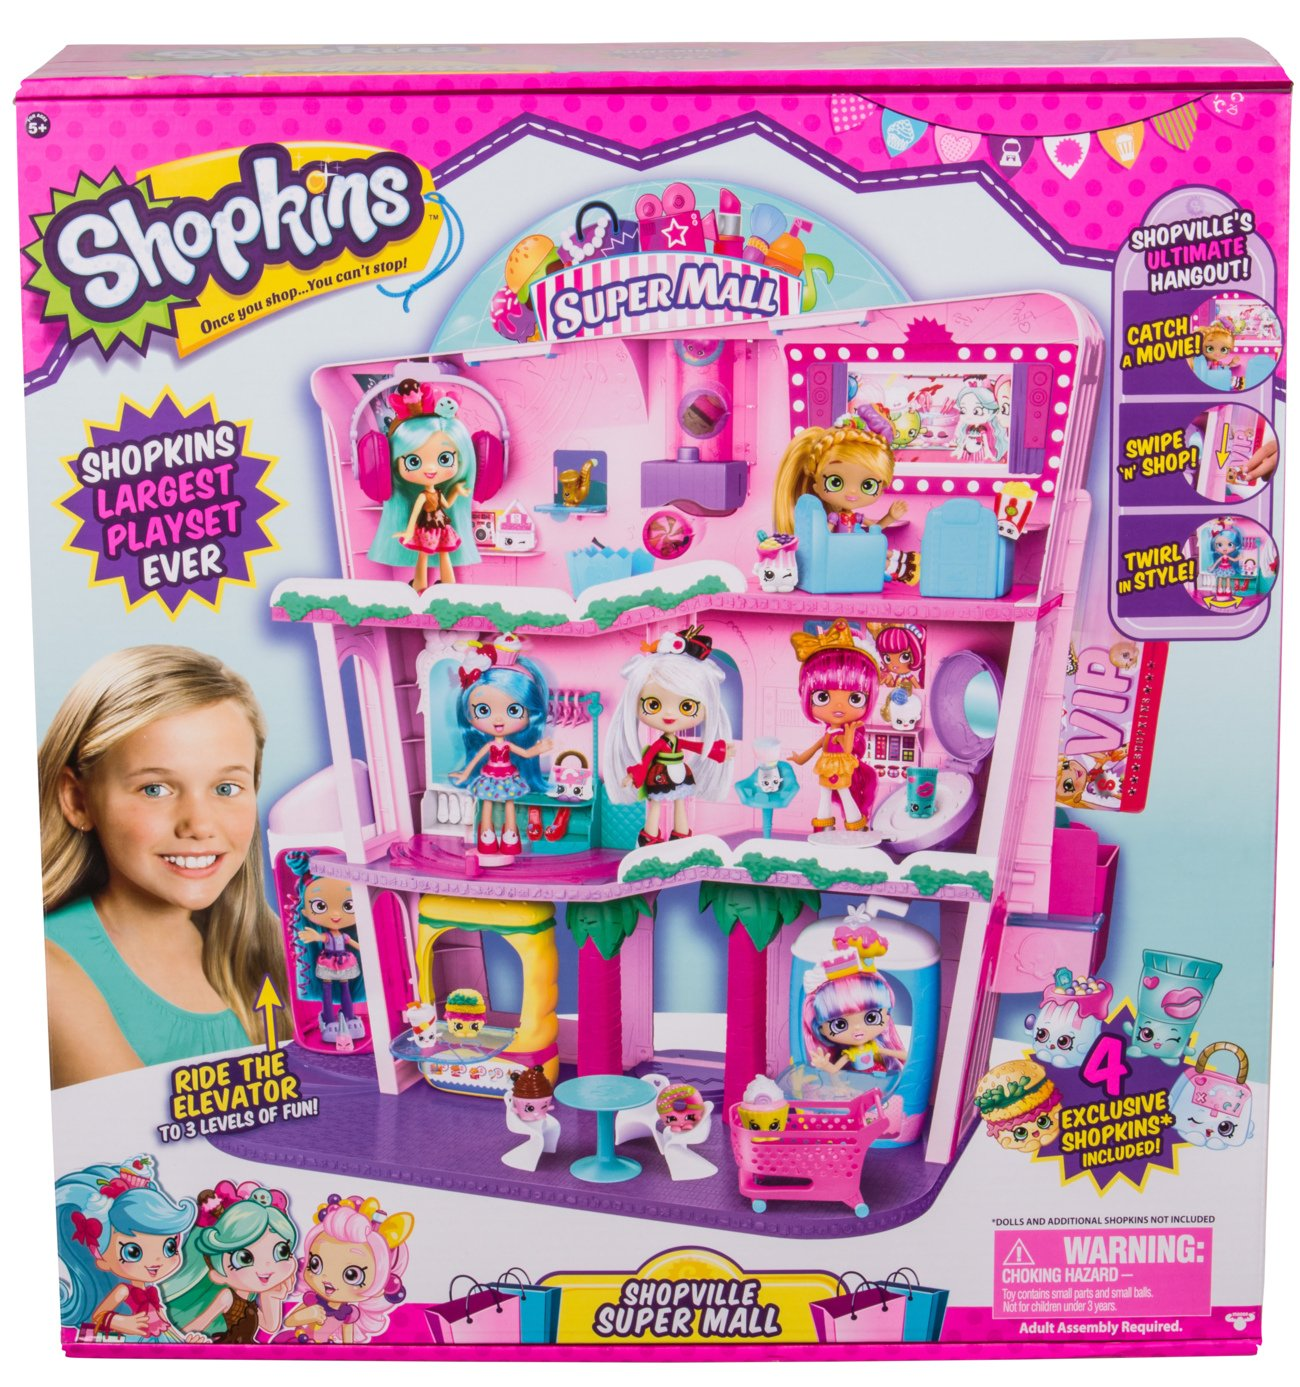 Top 9 Best Shopkins Toys Reviews in 2020 3